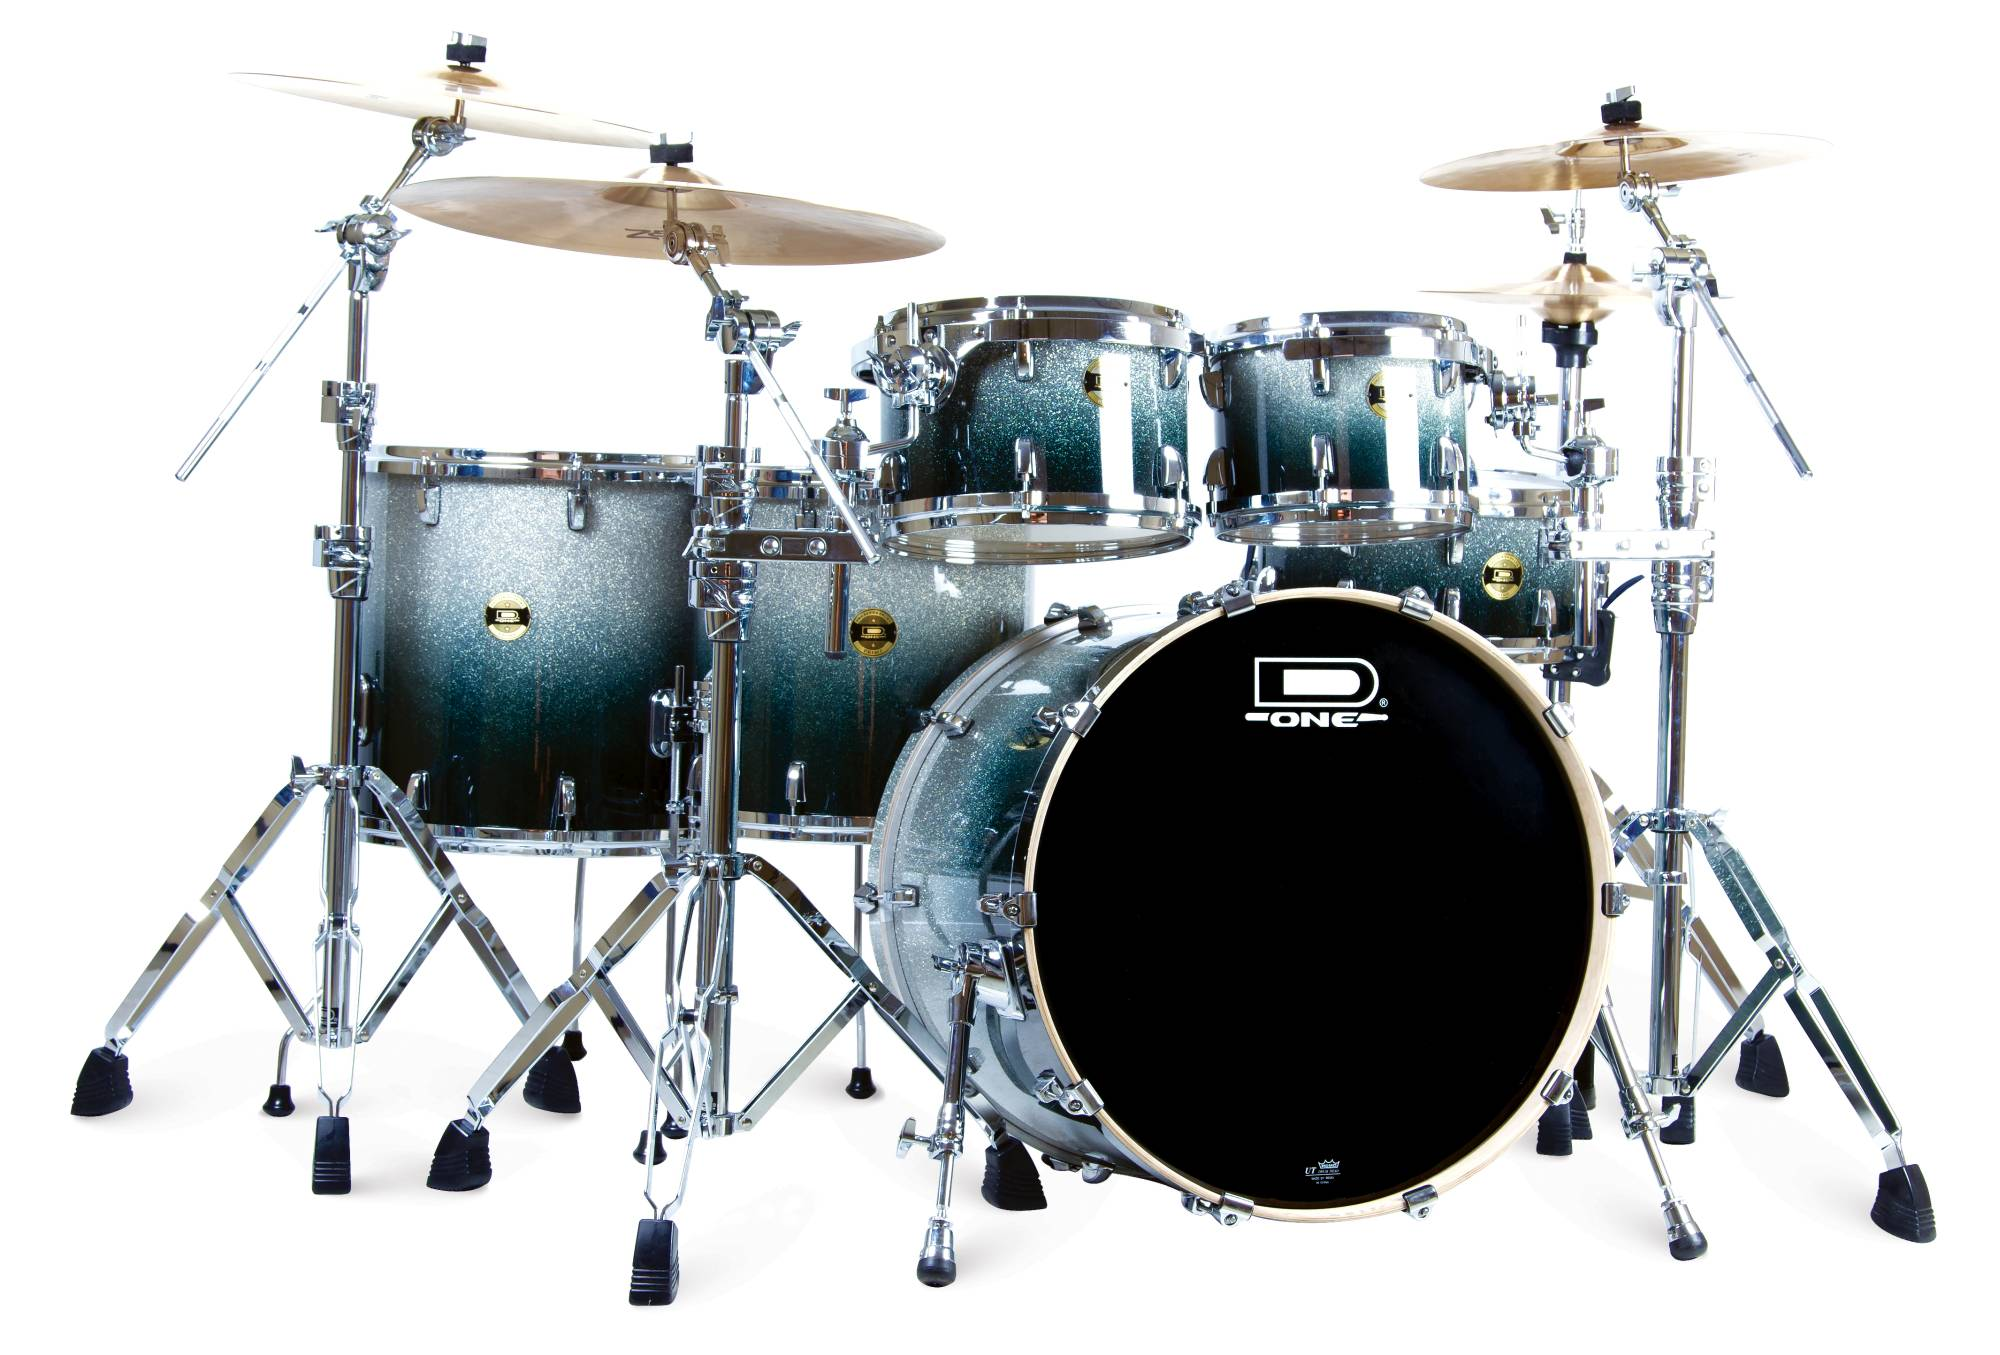 Bateria D.one Prime Pr22is Ice Sparkle